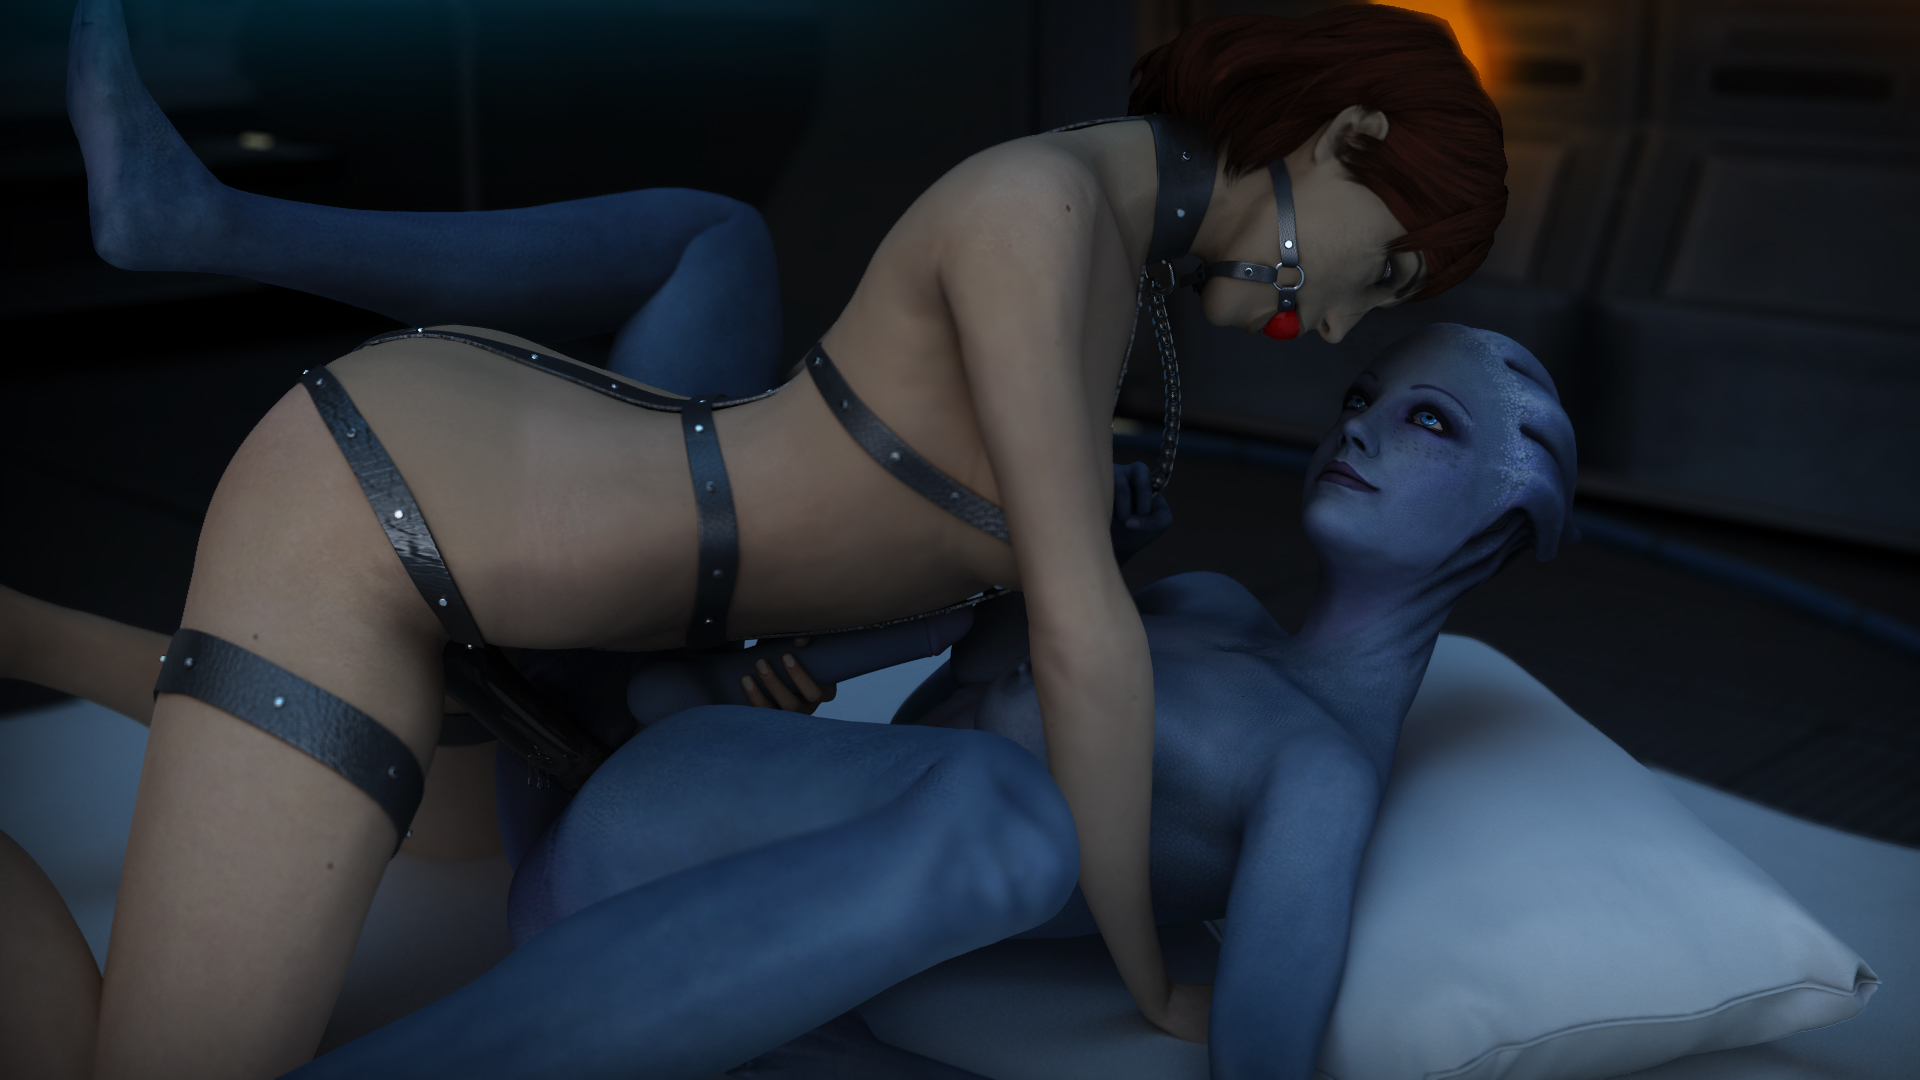 Mass effect liara xxx woman on woman adult picture